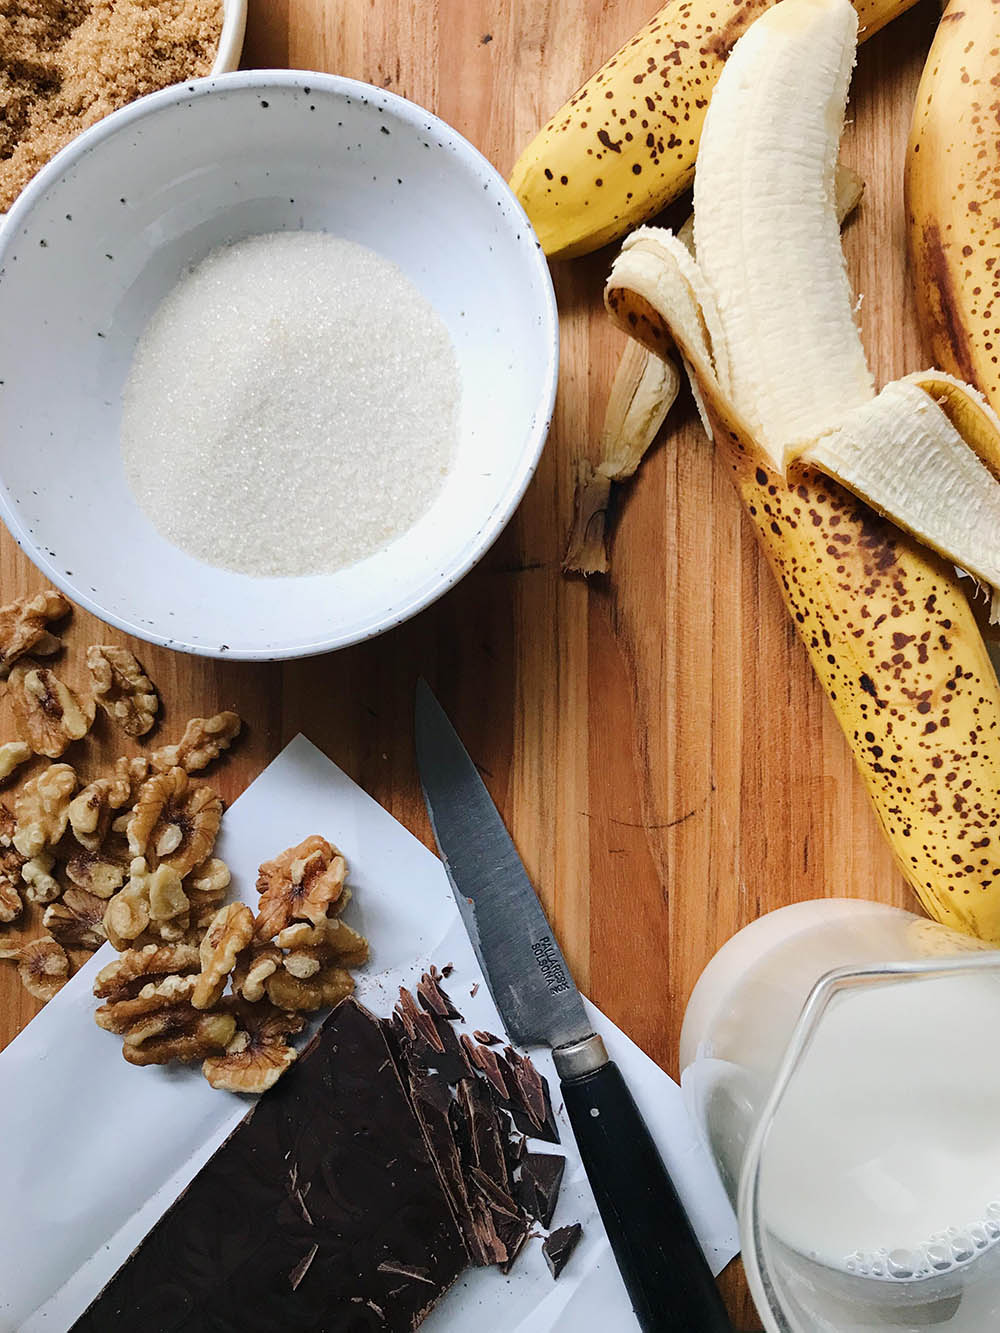 Banana bread ingredients on a wooden cutting board. Ripe banana, sugar, nuts, chocolate.